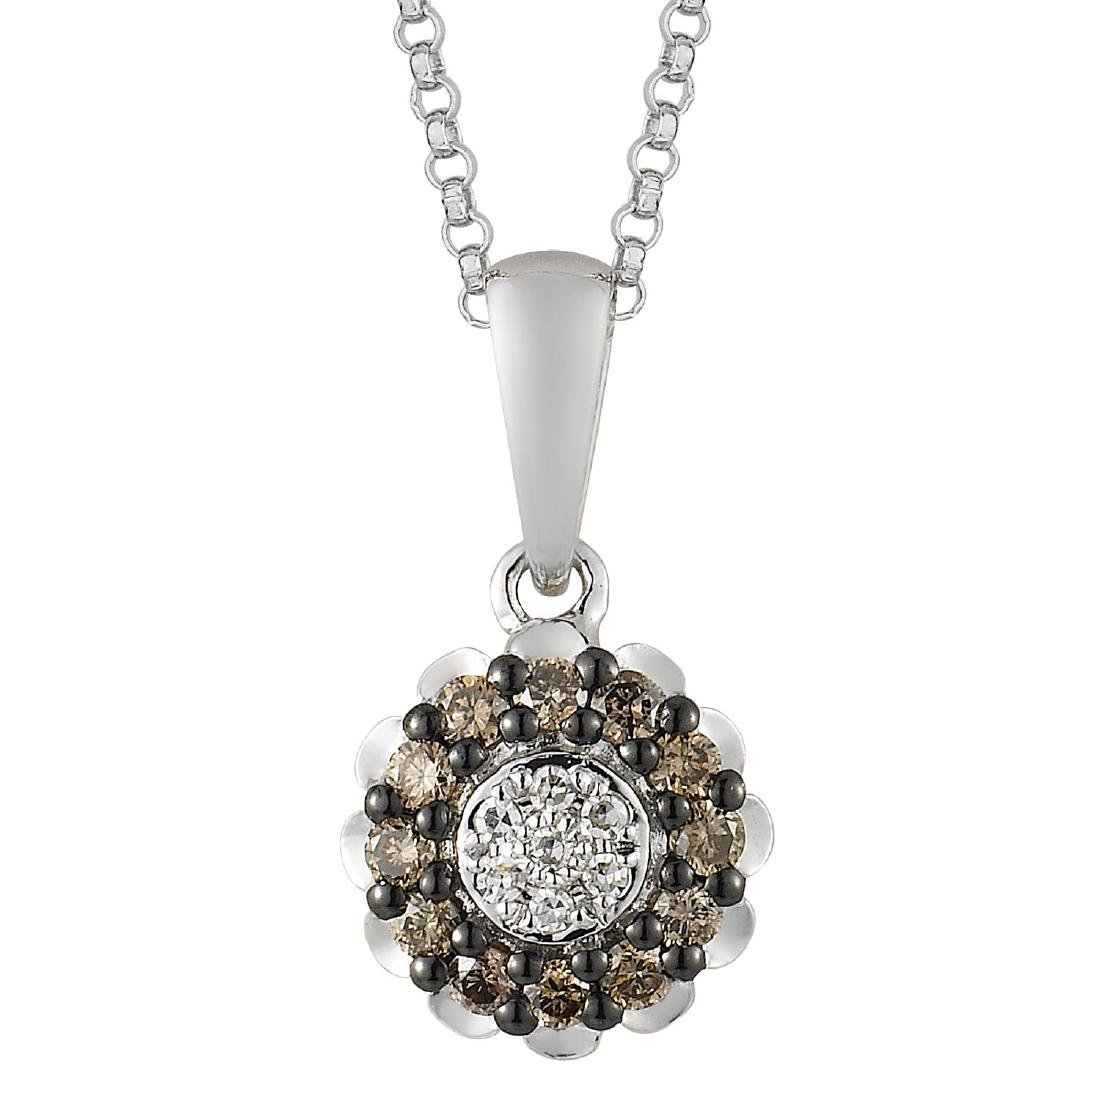 14KT White Gold Diamond Pendant With Chain - 2